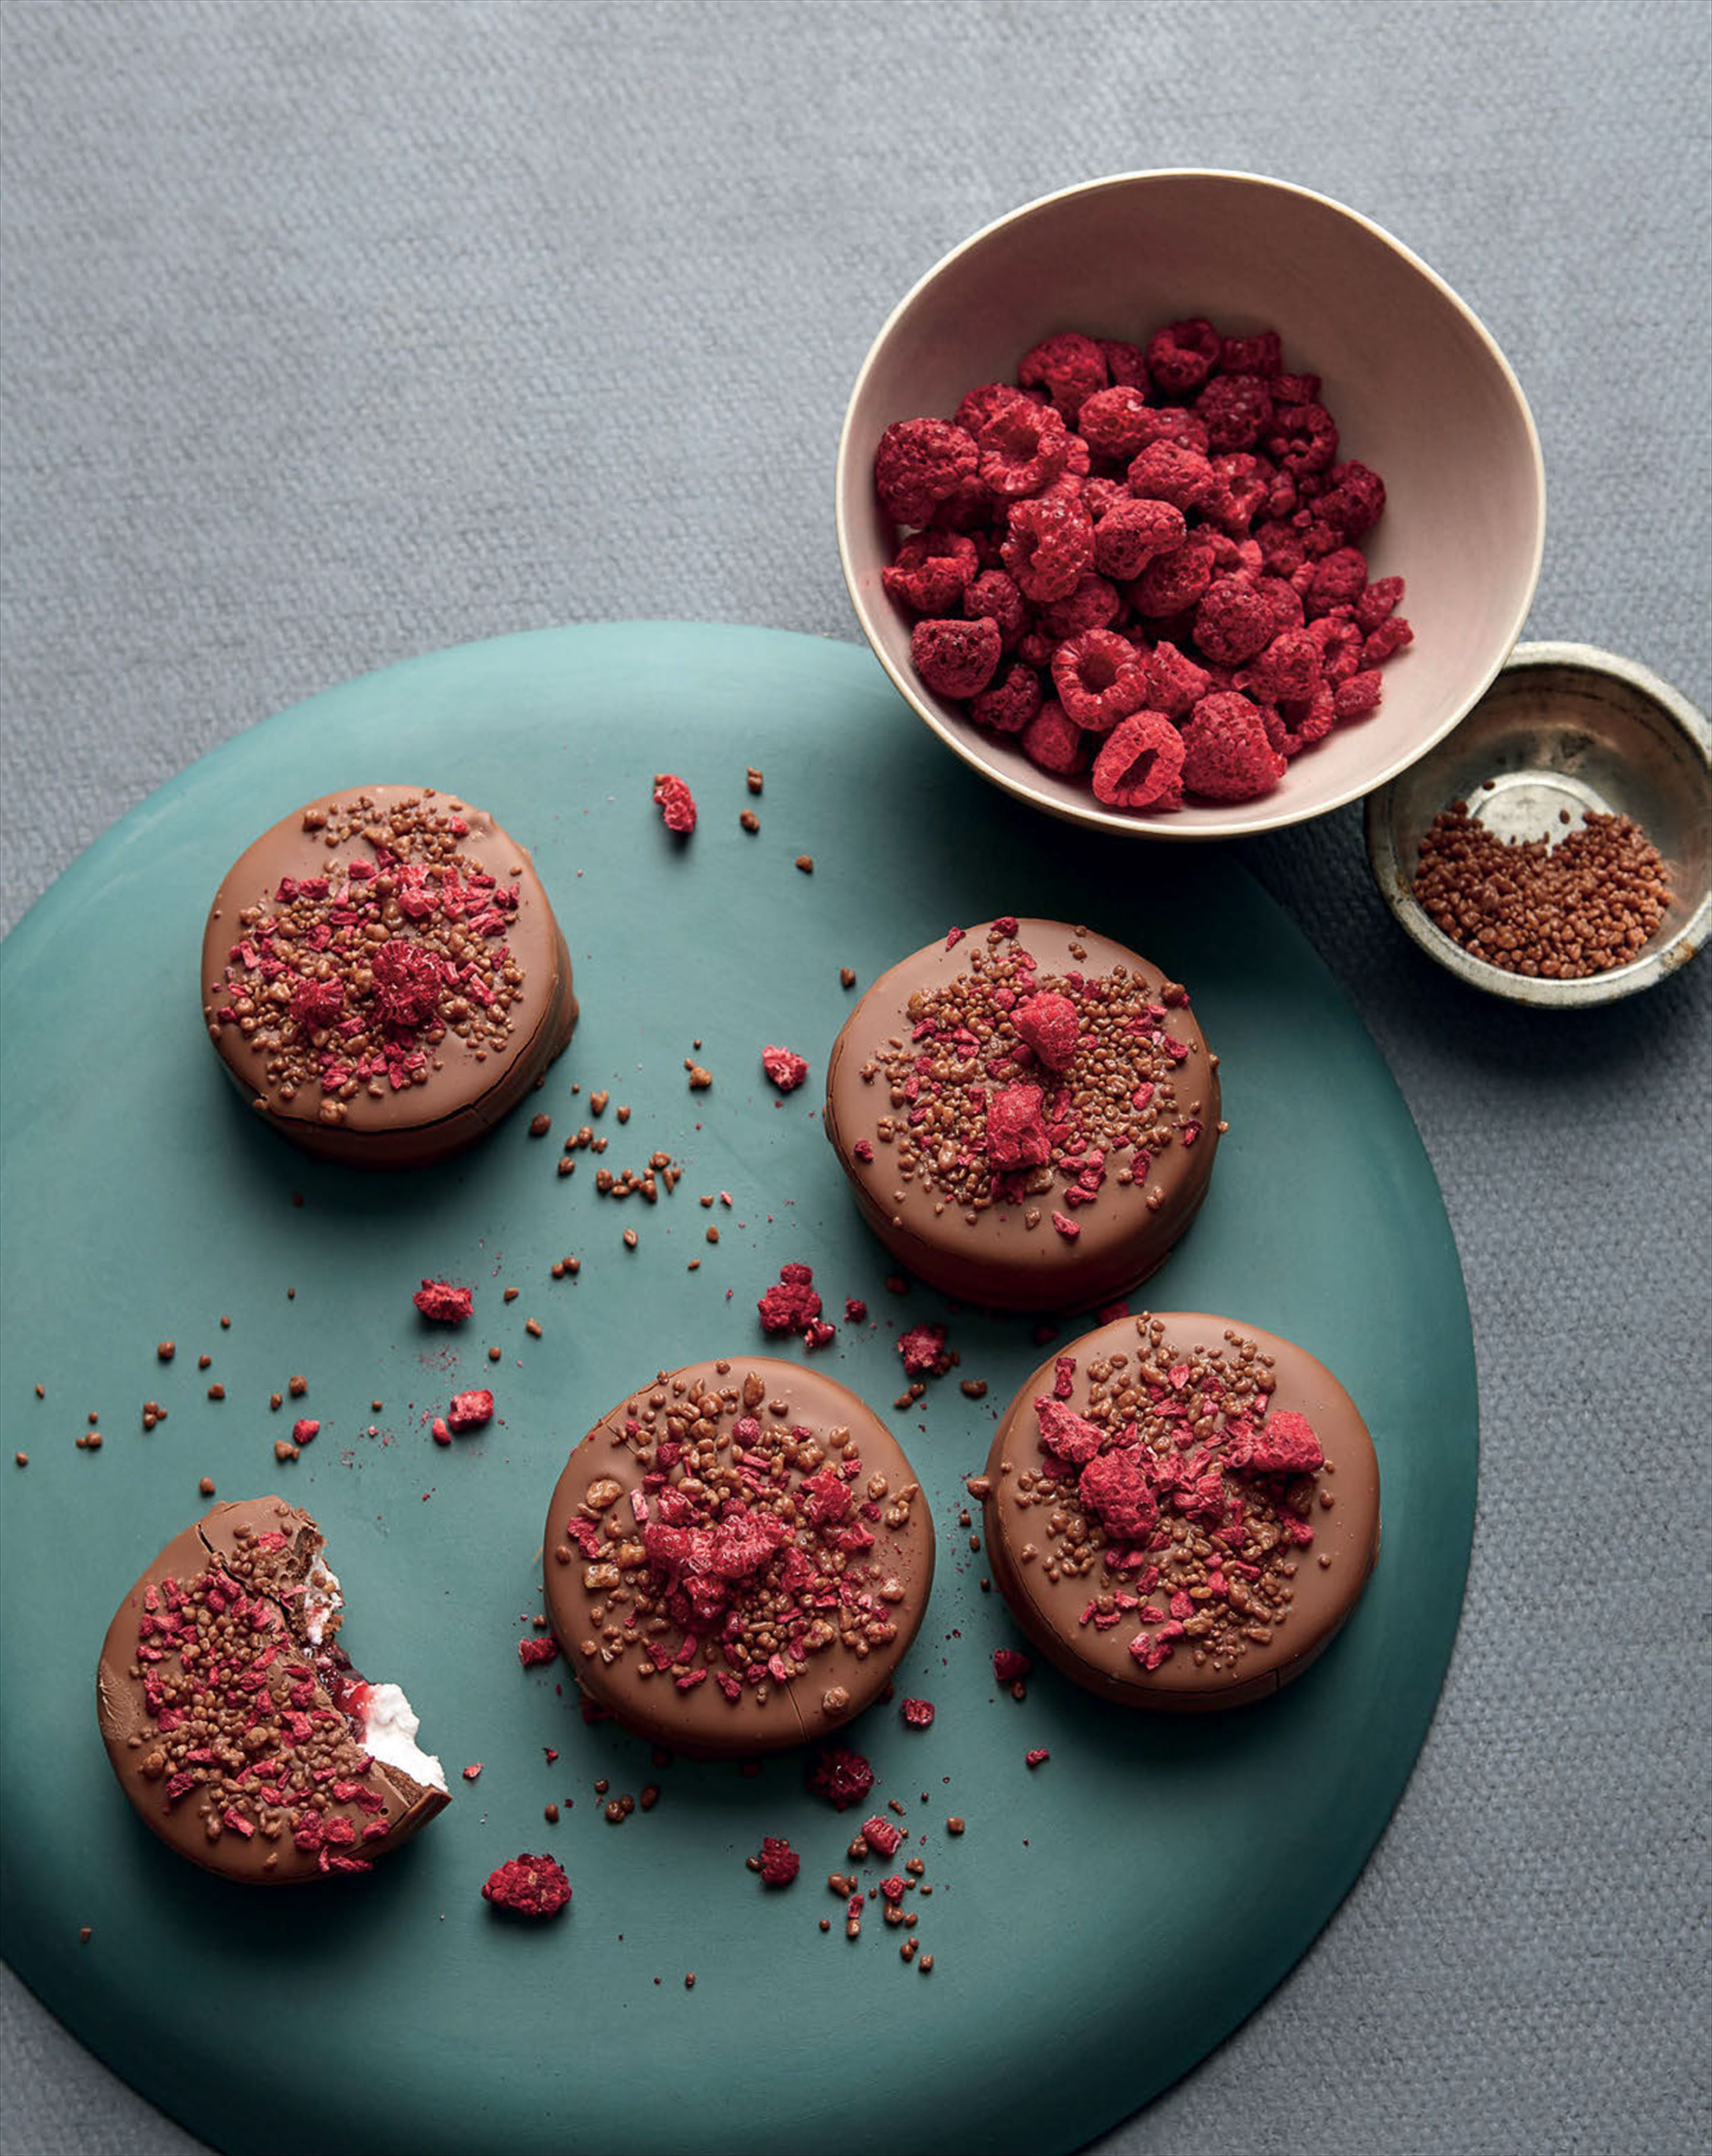 Explosive raspberry wagon wheels